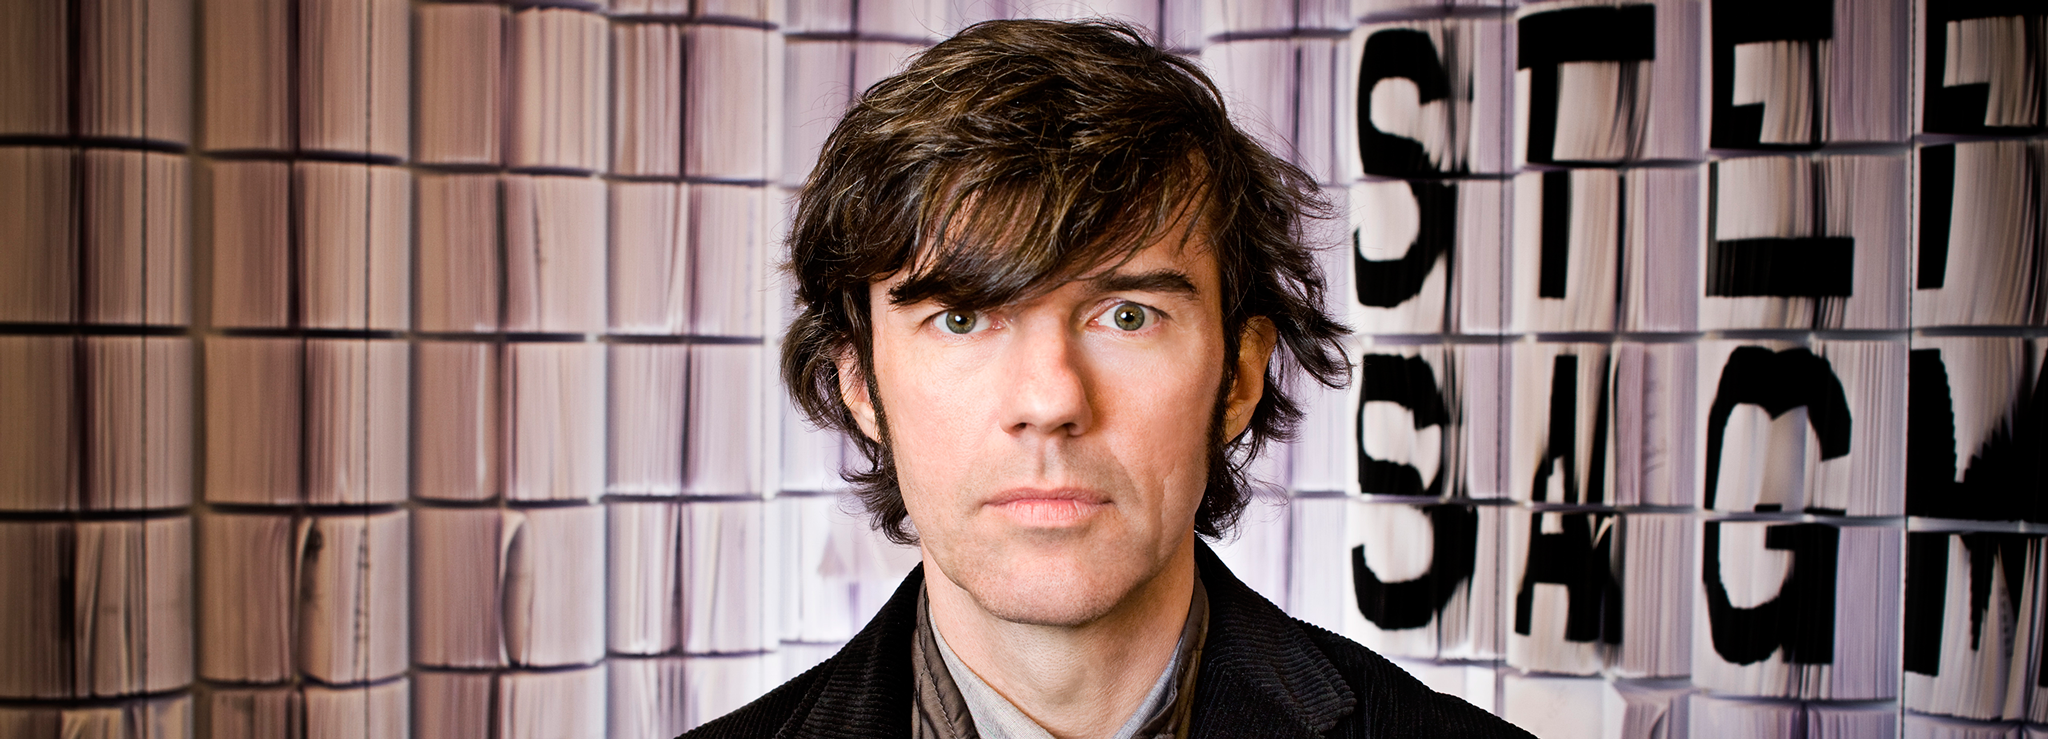 Sagmeister_Close-Up